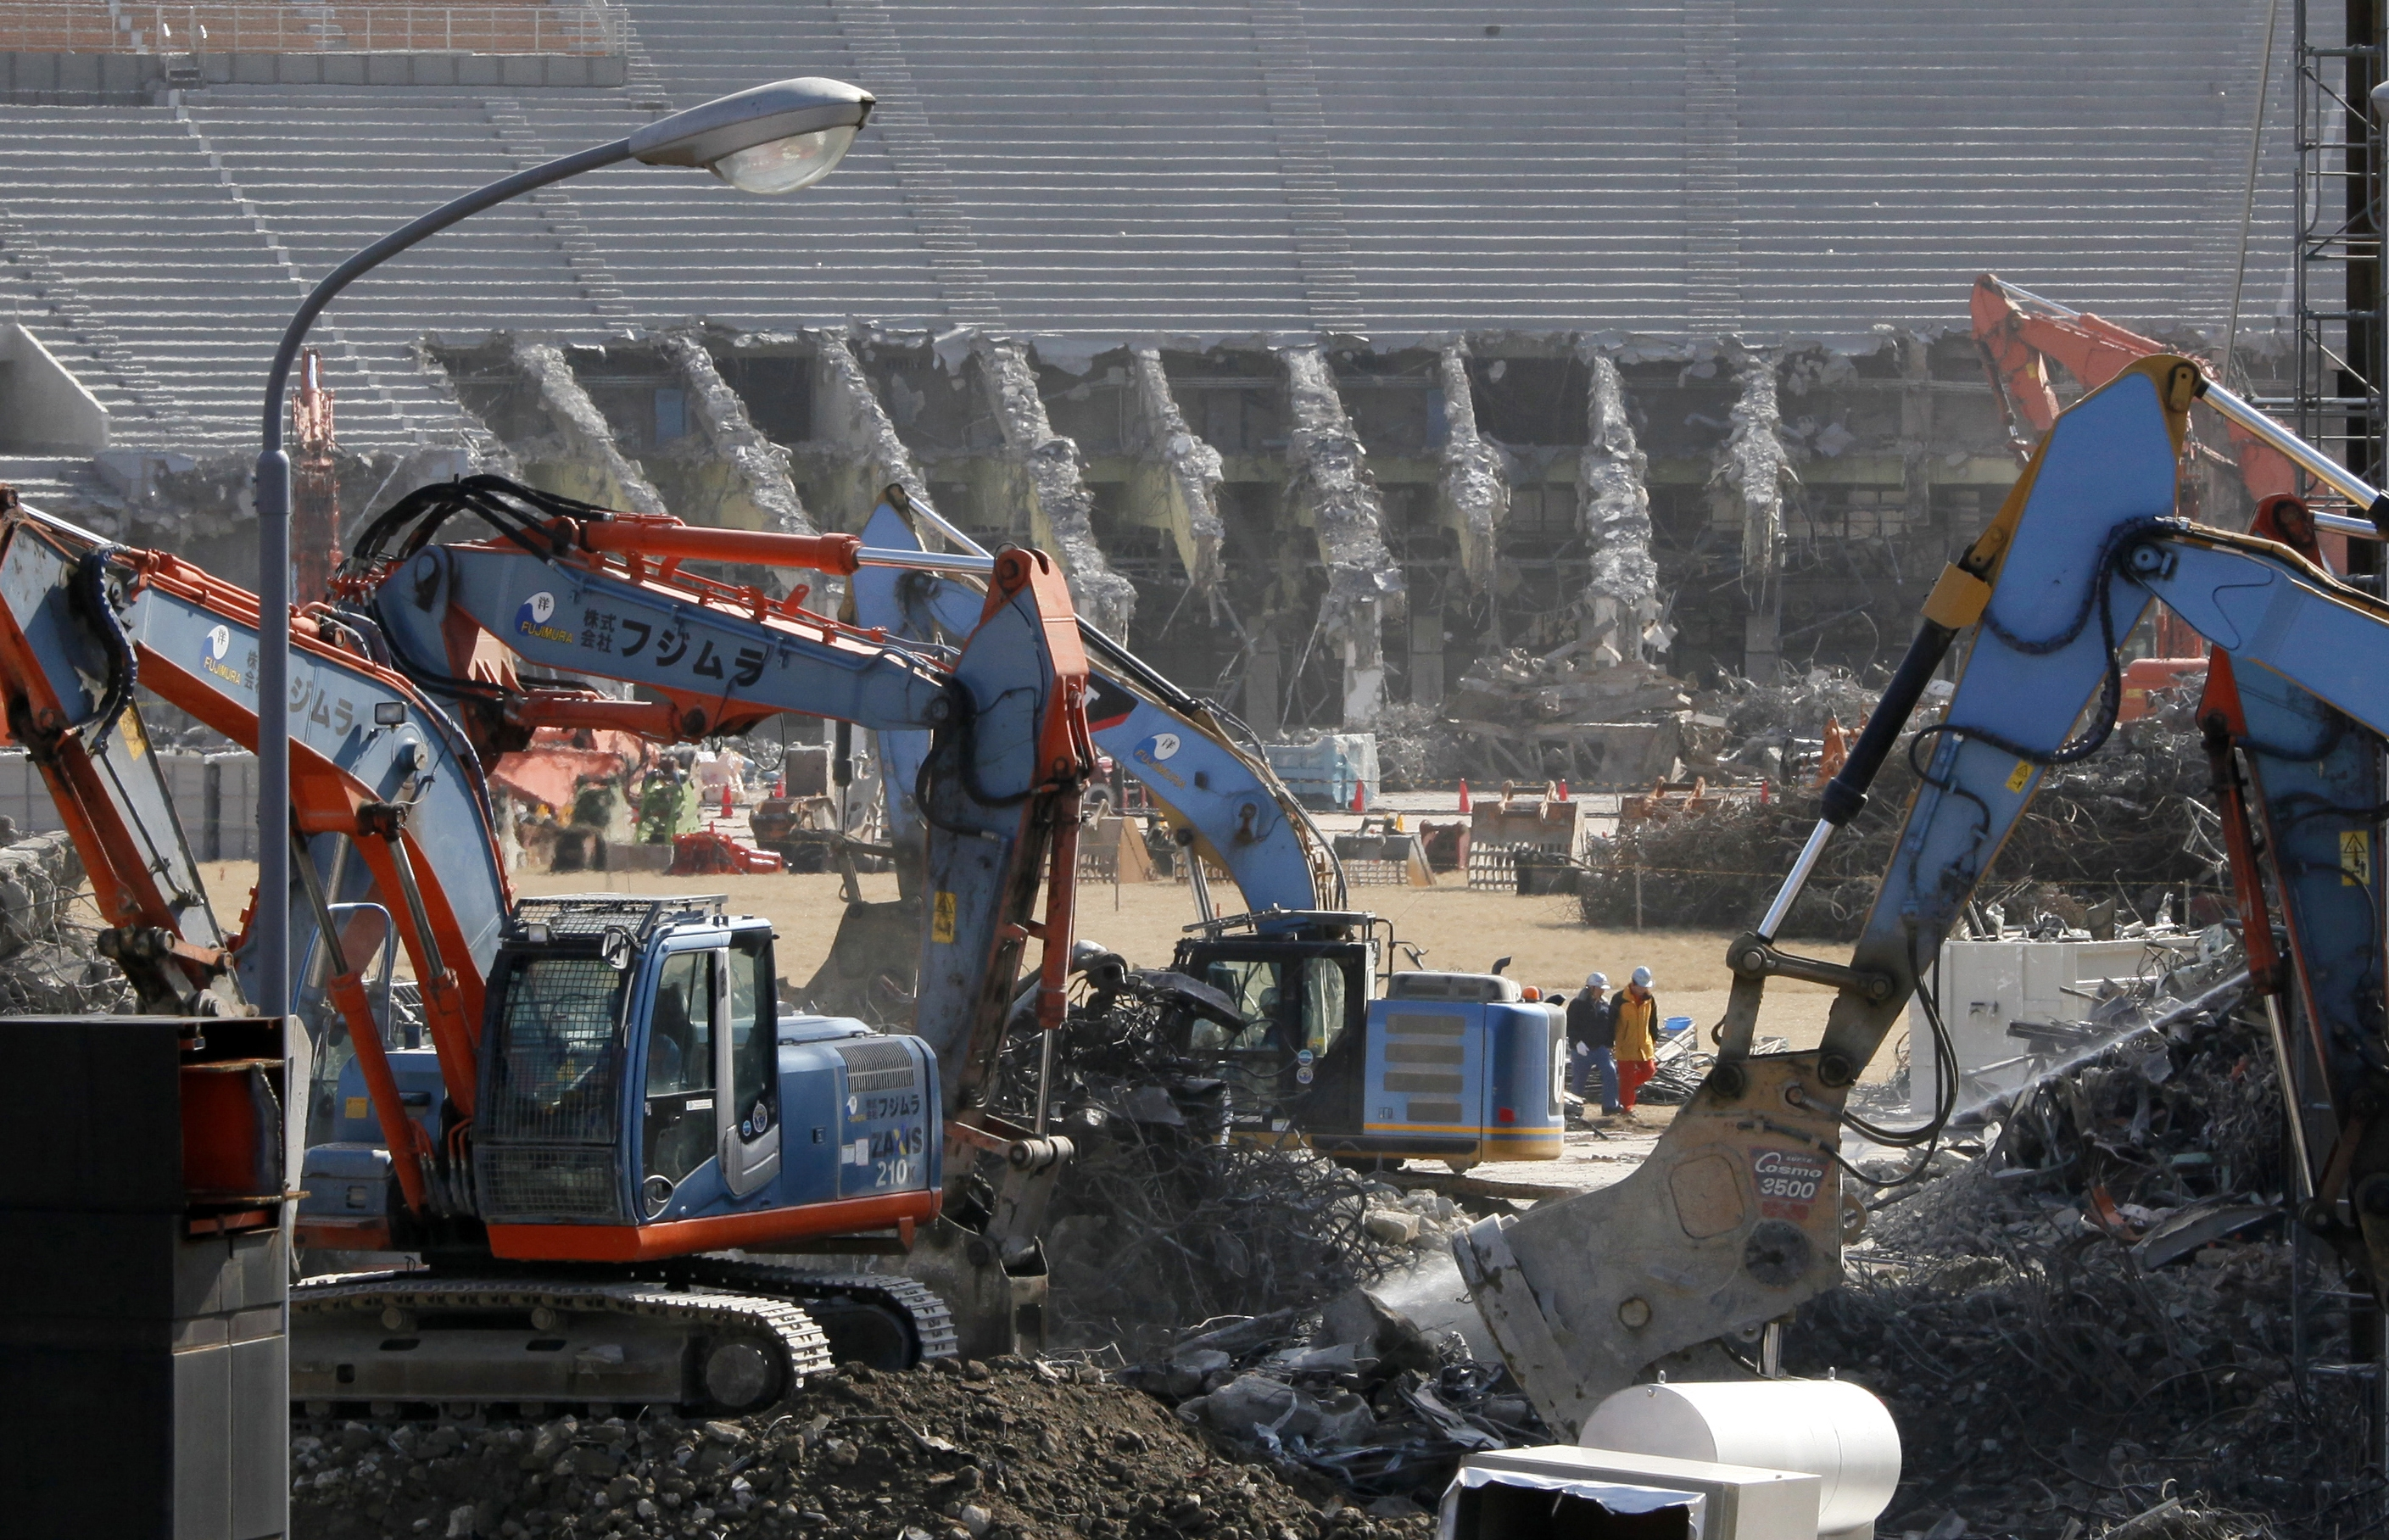 Japan's National Stadium is dismantled for the renovation as Japan hosts the 2020 Olympics Thursday, March 5, 2015. Photo: AP